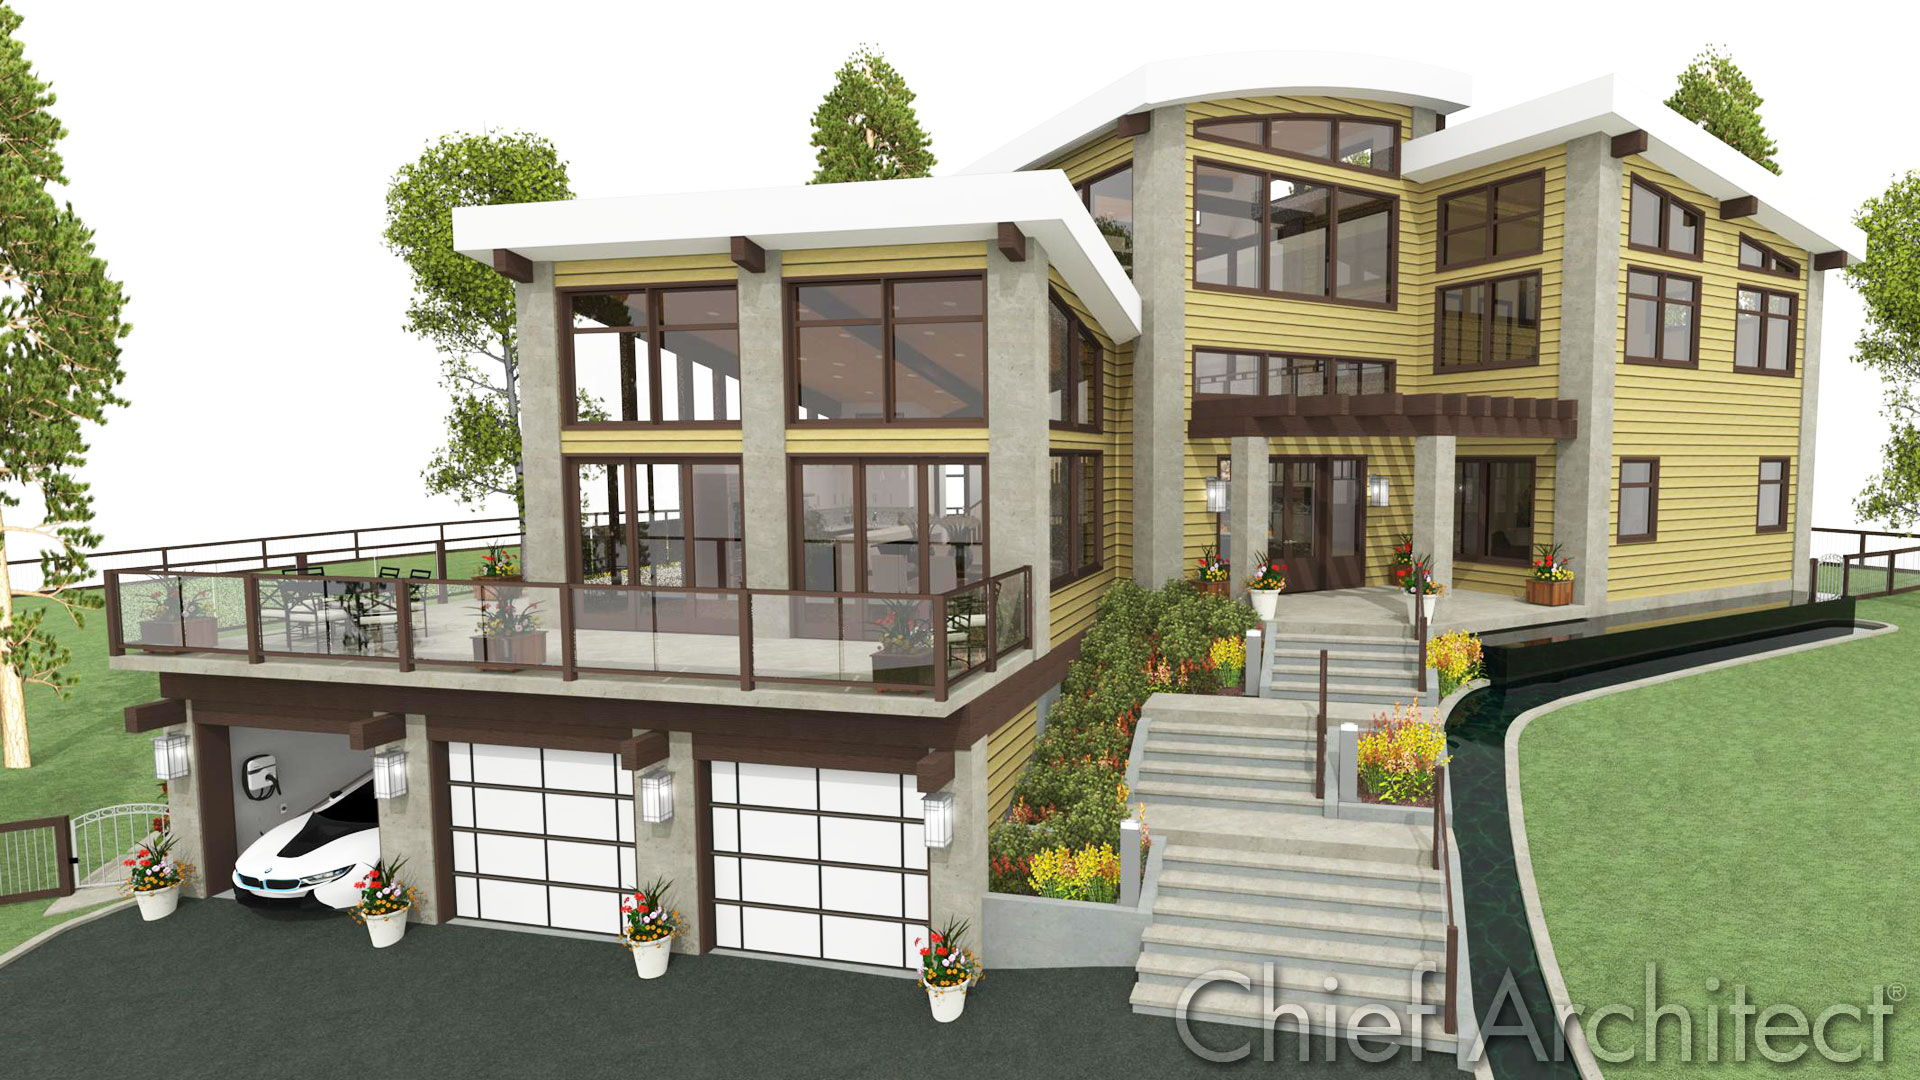 Chief architect home design software samples gallery for Building a garage on a sloped lot